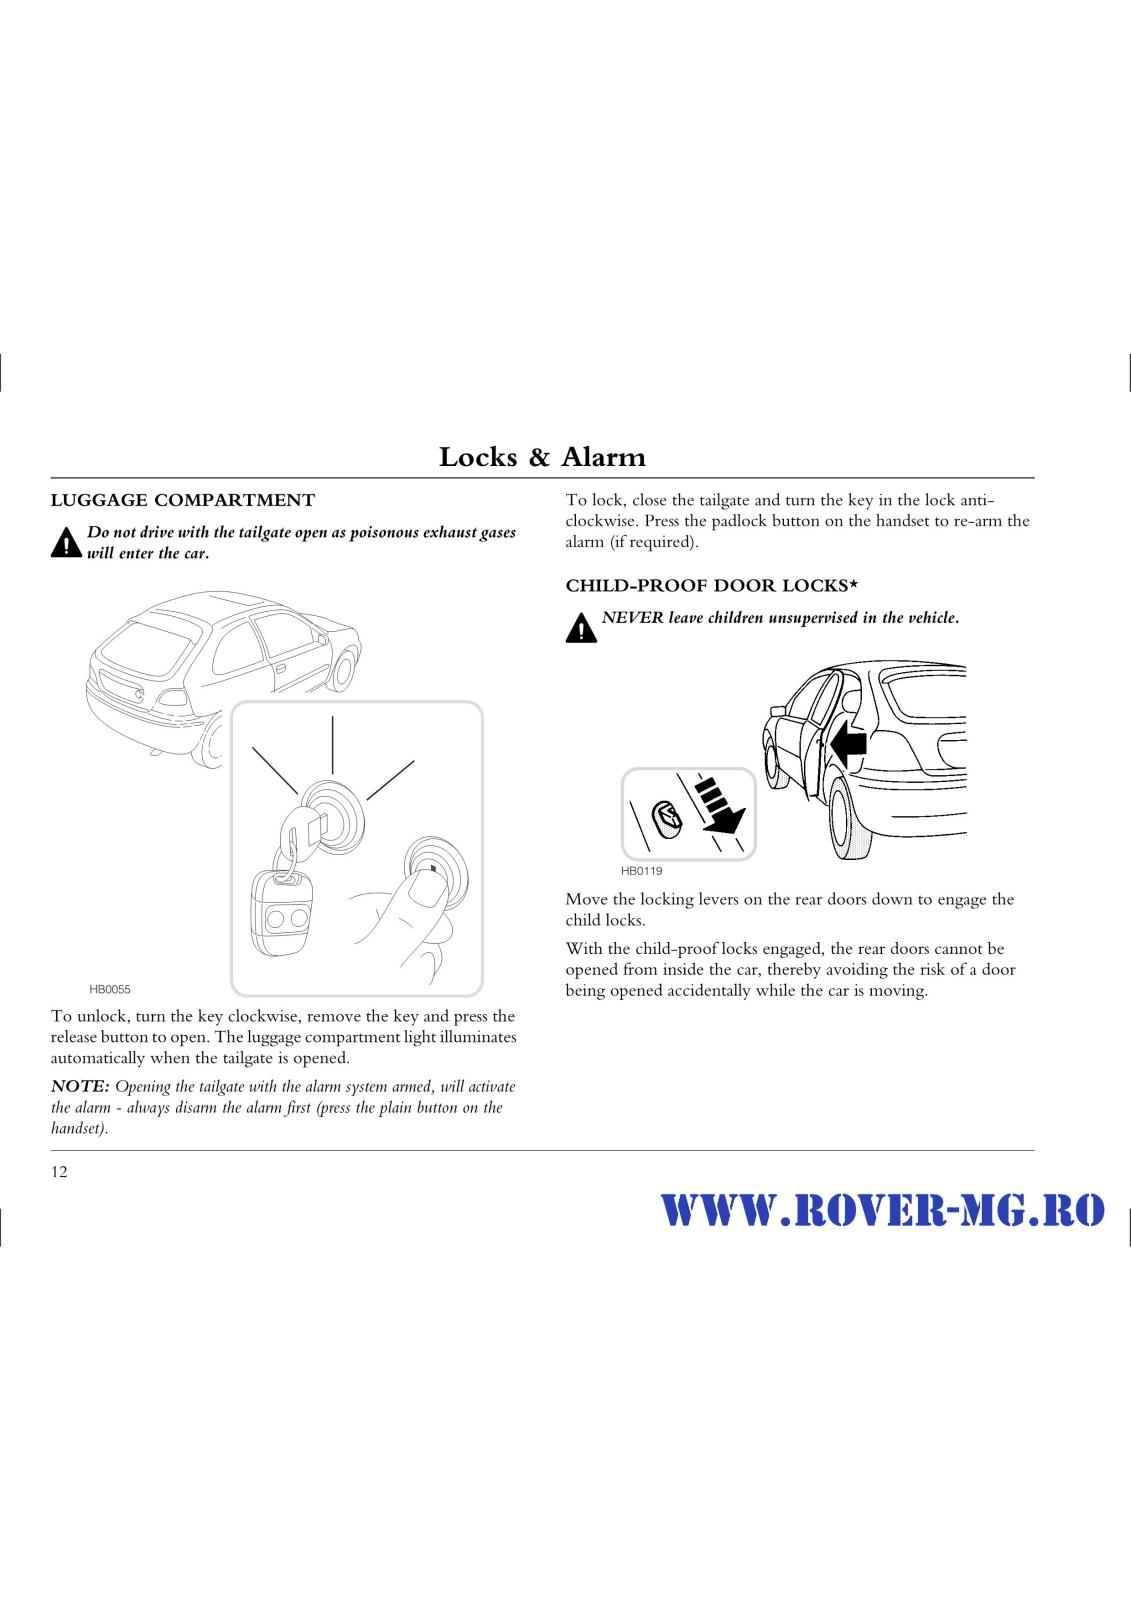 Index Of Forum 1documentatii Rovermg Rover 25 Handbook Files Res Luggage Security Alarm Schematic Page0012 I2